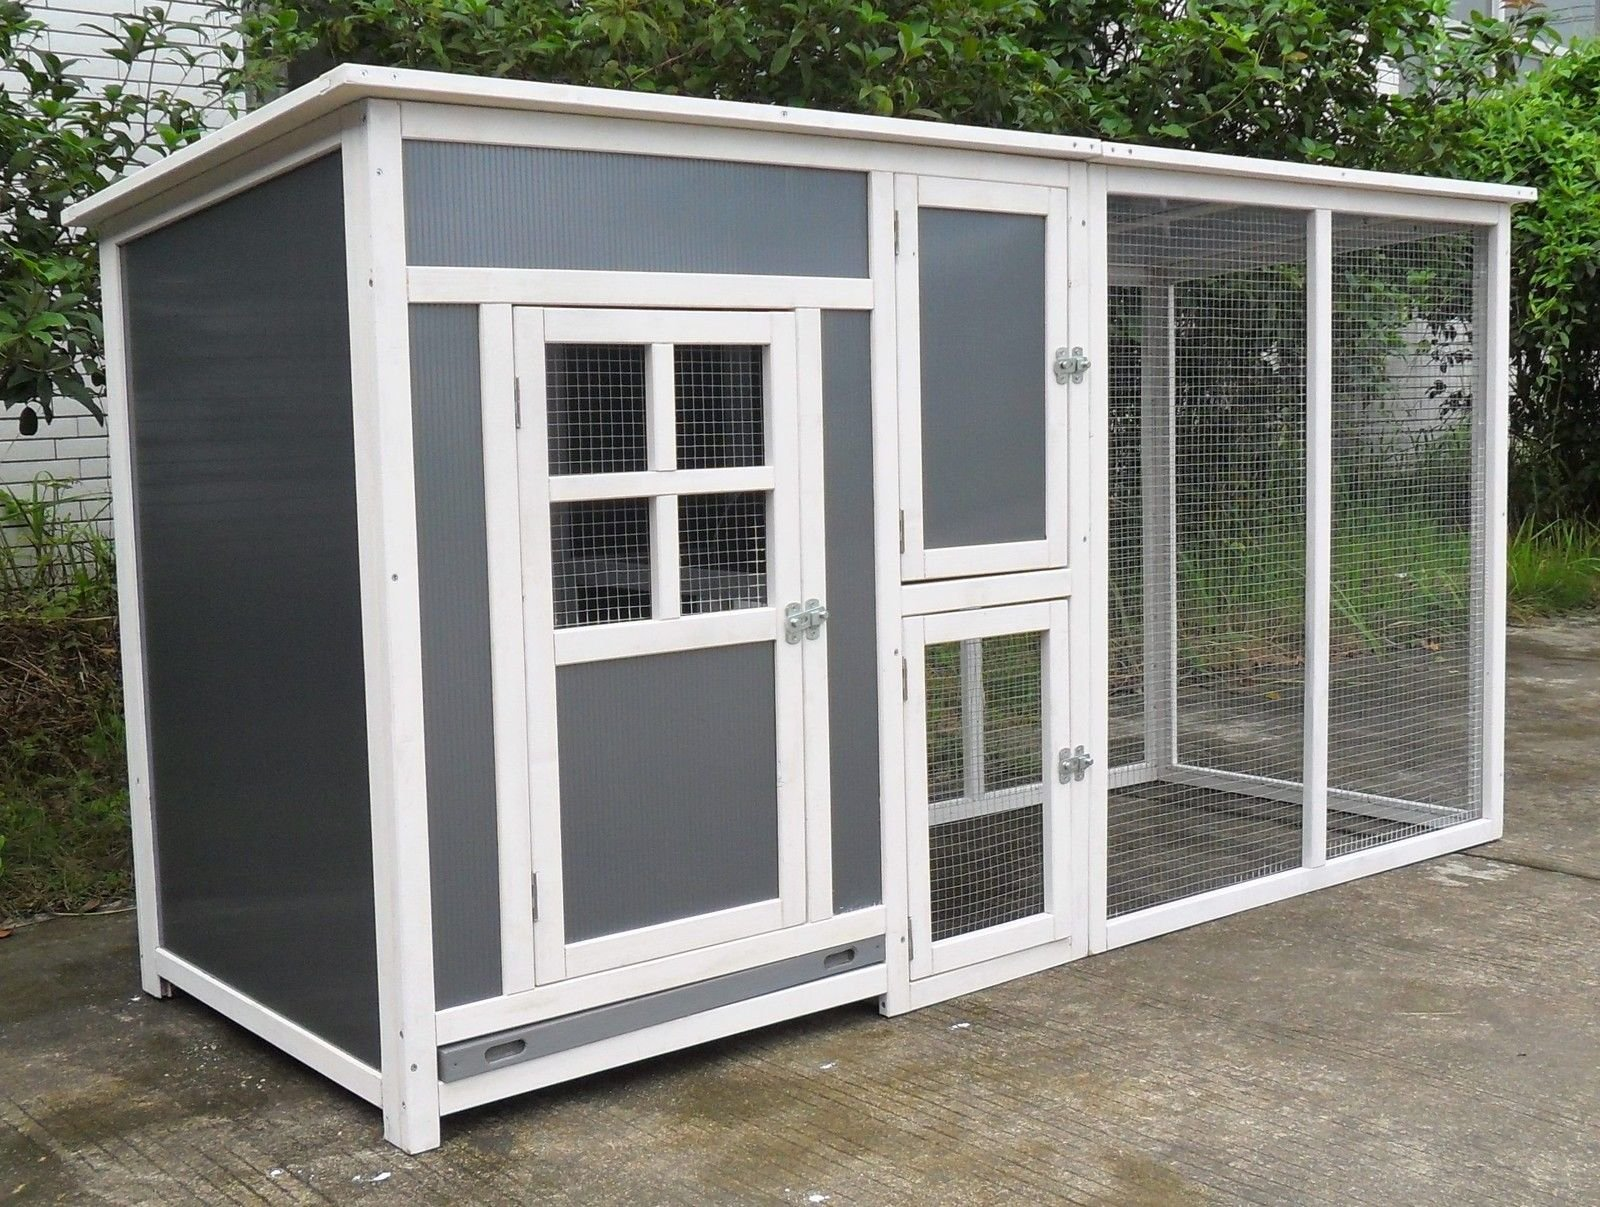 ChickenCoopOutlet 78'' Light Weight Wood Frame Chicken Coop With Plastic Inserts Backyard Hen House 2-4 Chickens Nesting Box & Run by ChickenCoopOutlet